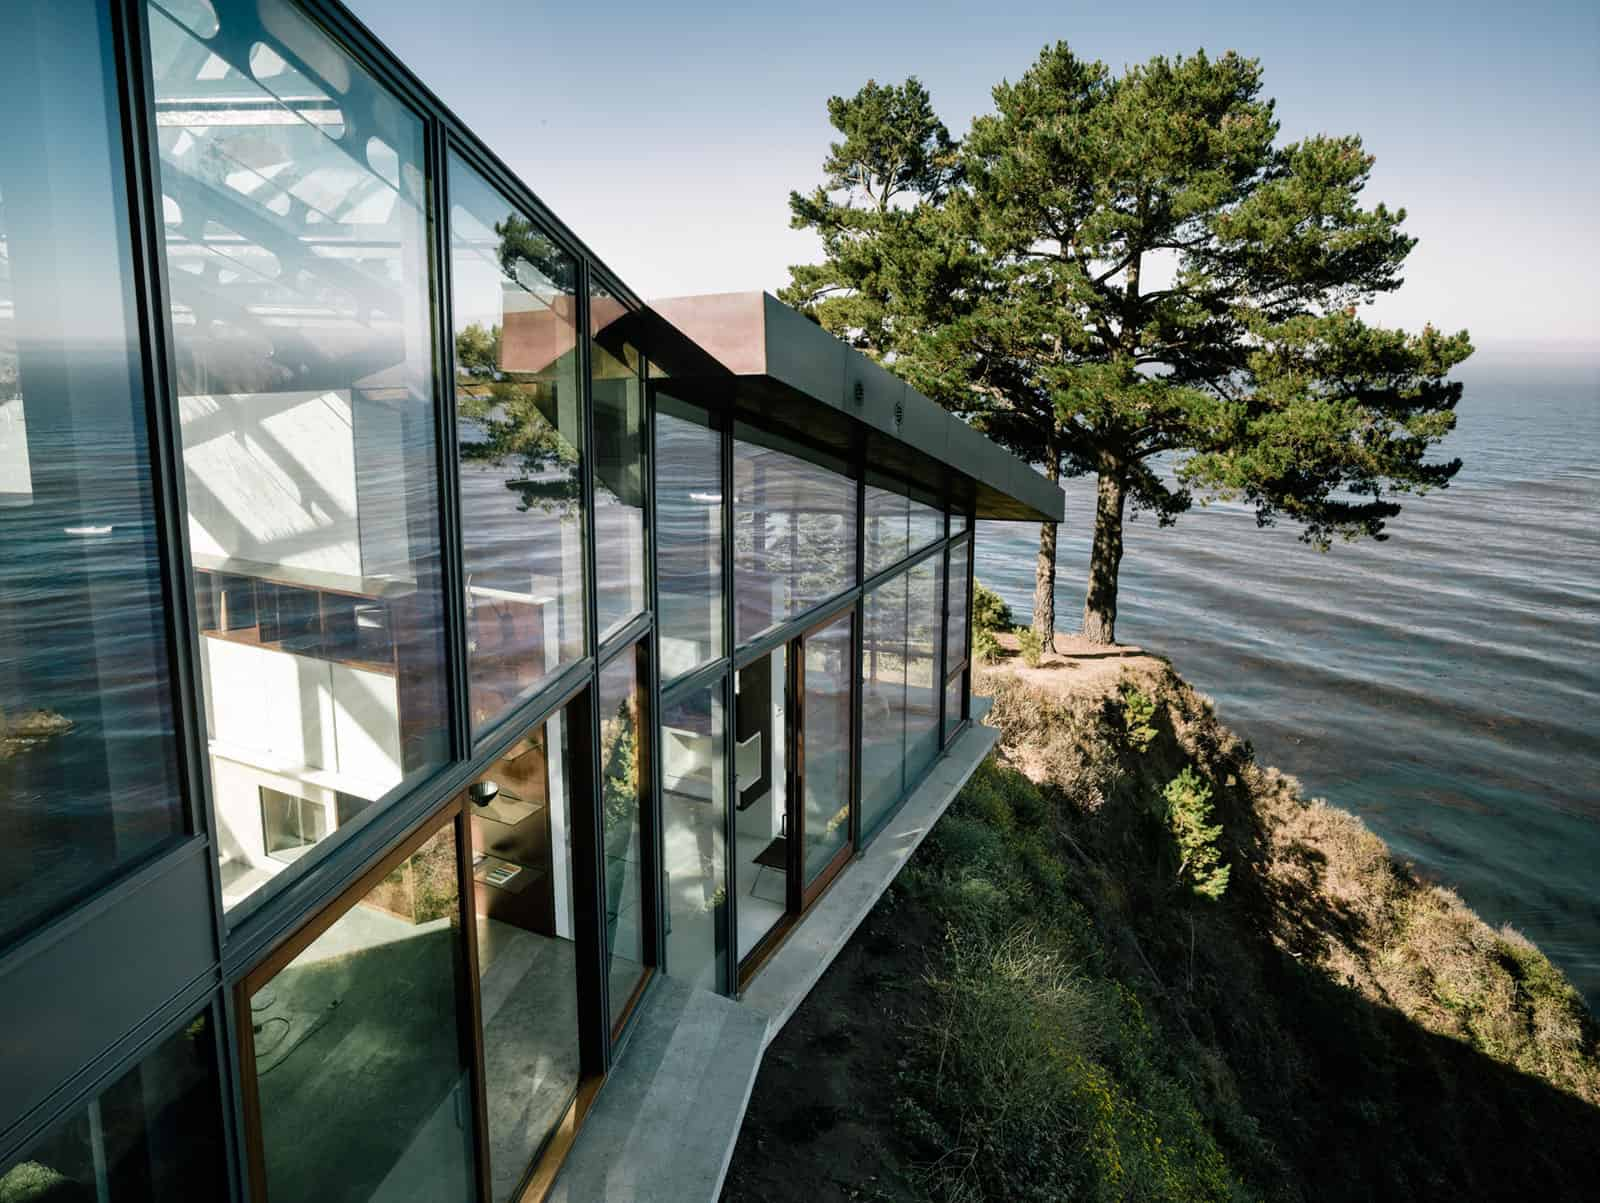 3-Level House on Desolate Bluff Overlooking Ocean